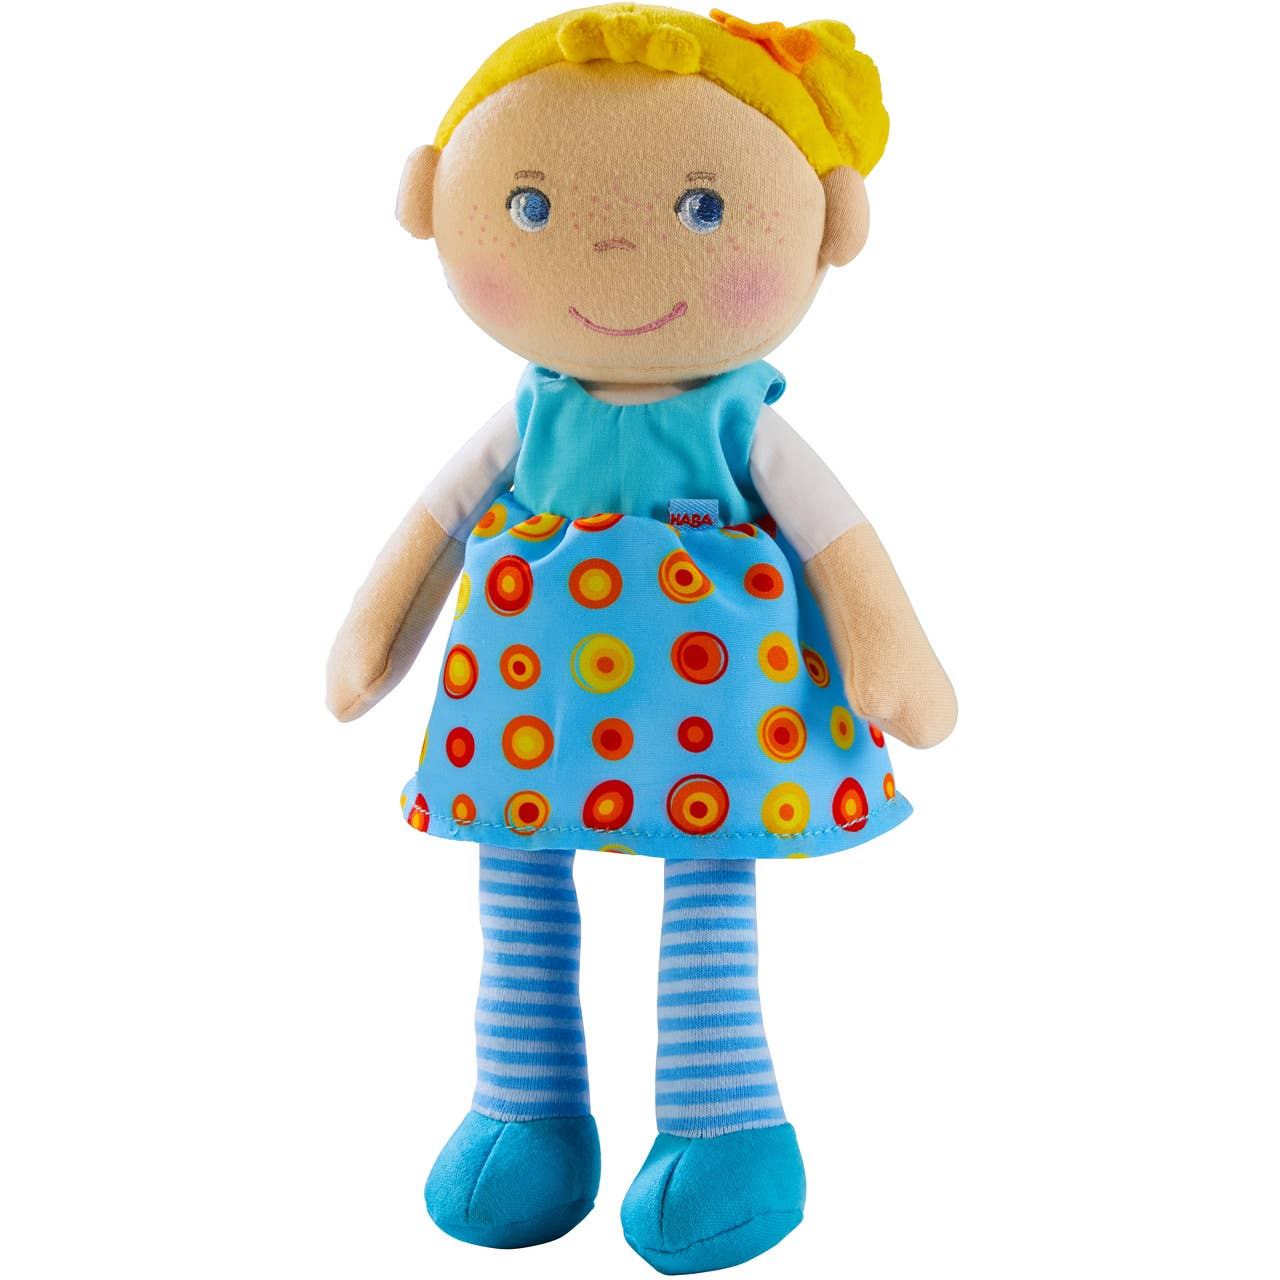 Haba Snug Up Doll Edda - Crunch Natural Parenting is where to buy